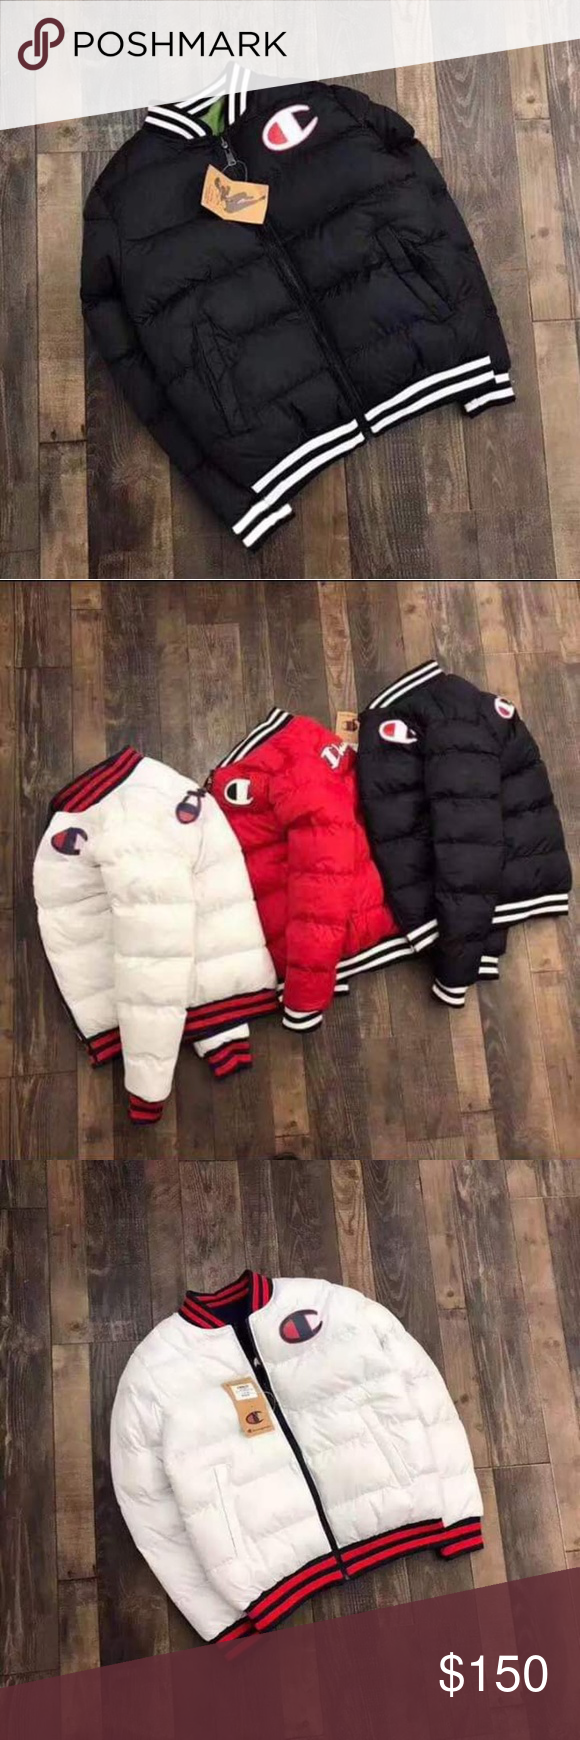 Champion Puffer Coat Champion Puffer Coat Sizes Small To 2xl Comes In Colors Black Red Or White Champion Jackets Coats P Puffer Coat Champion Jacket Coat [ 1740 x 580 Pixel ]